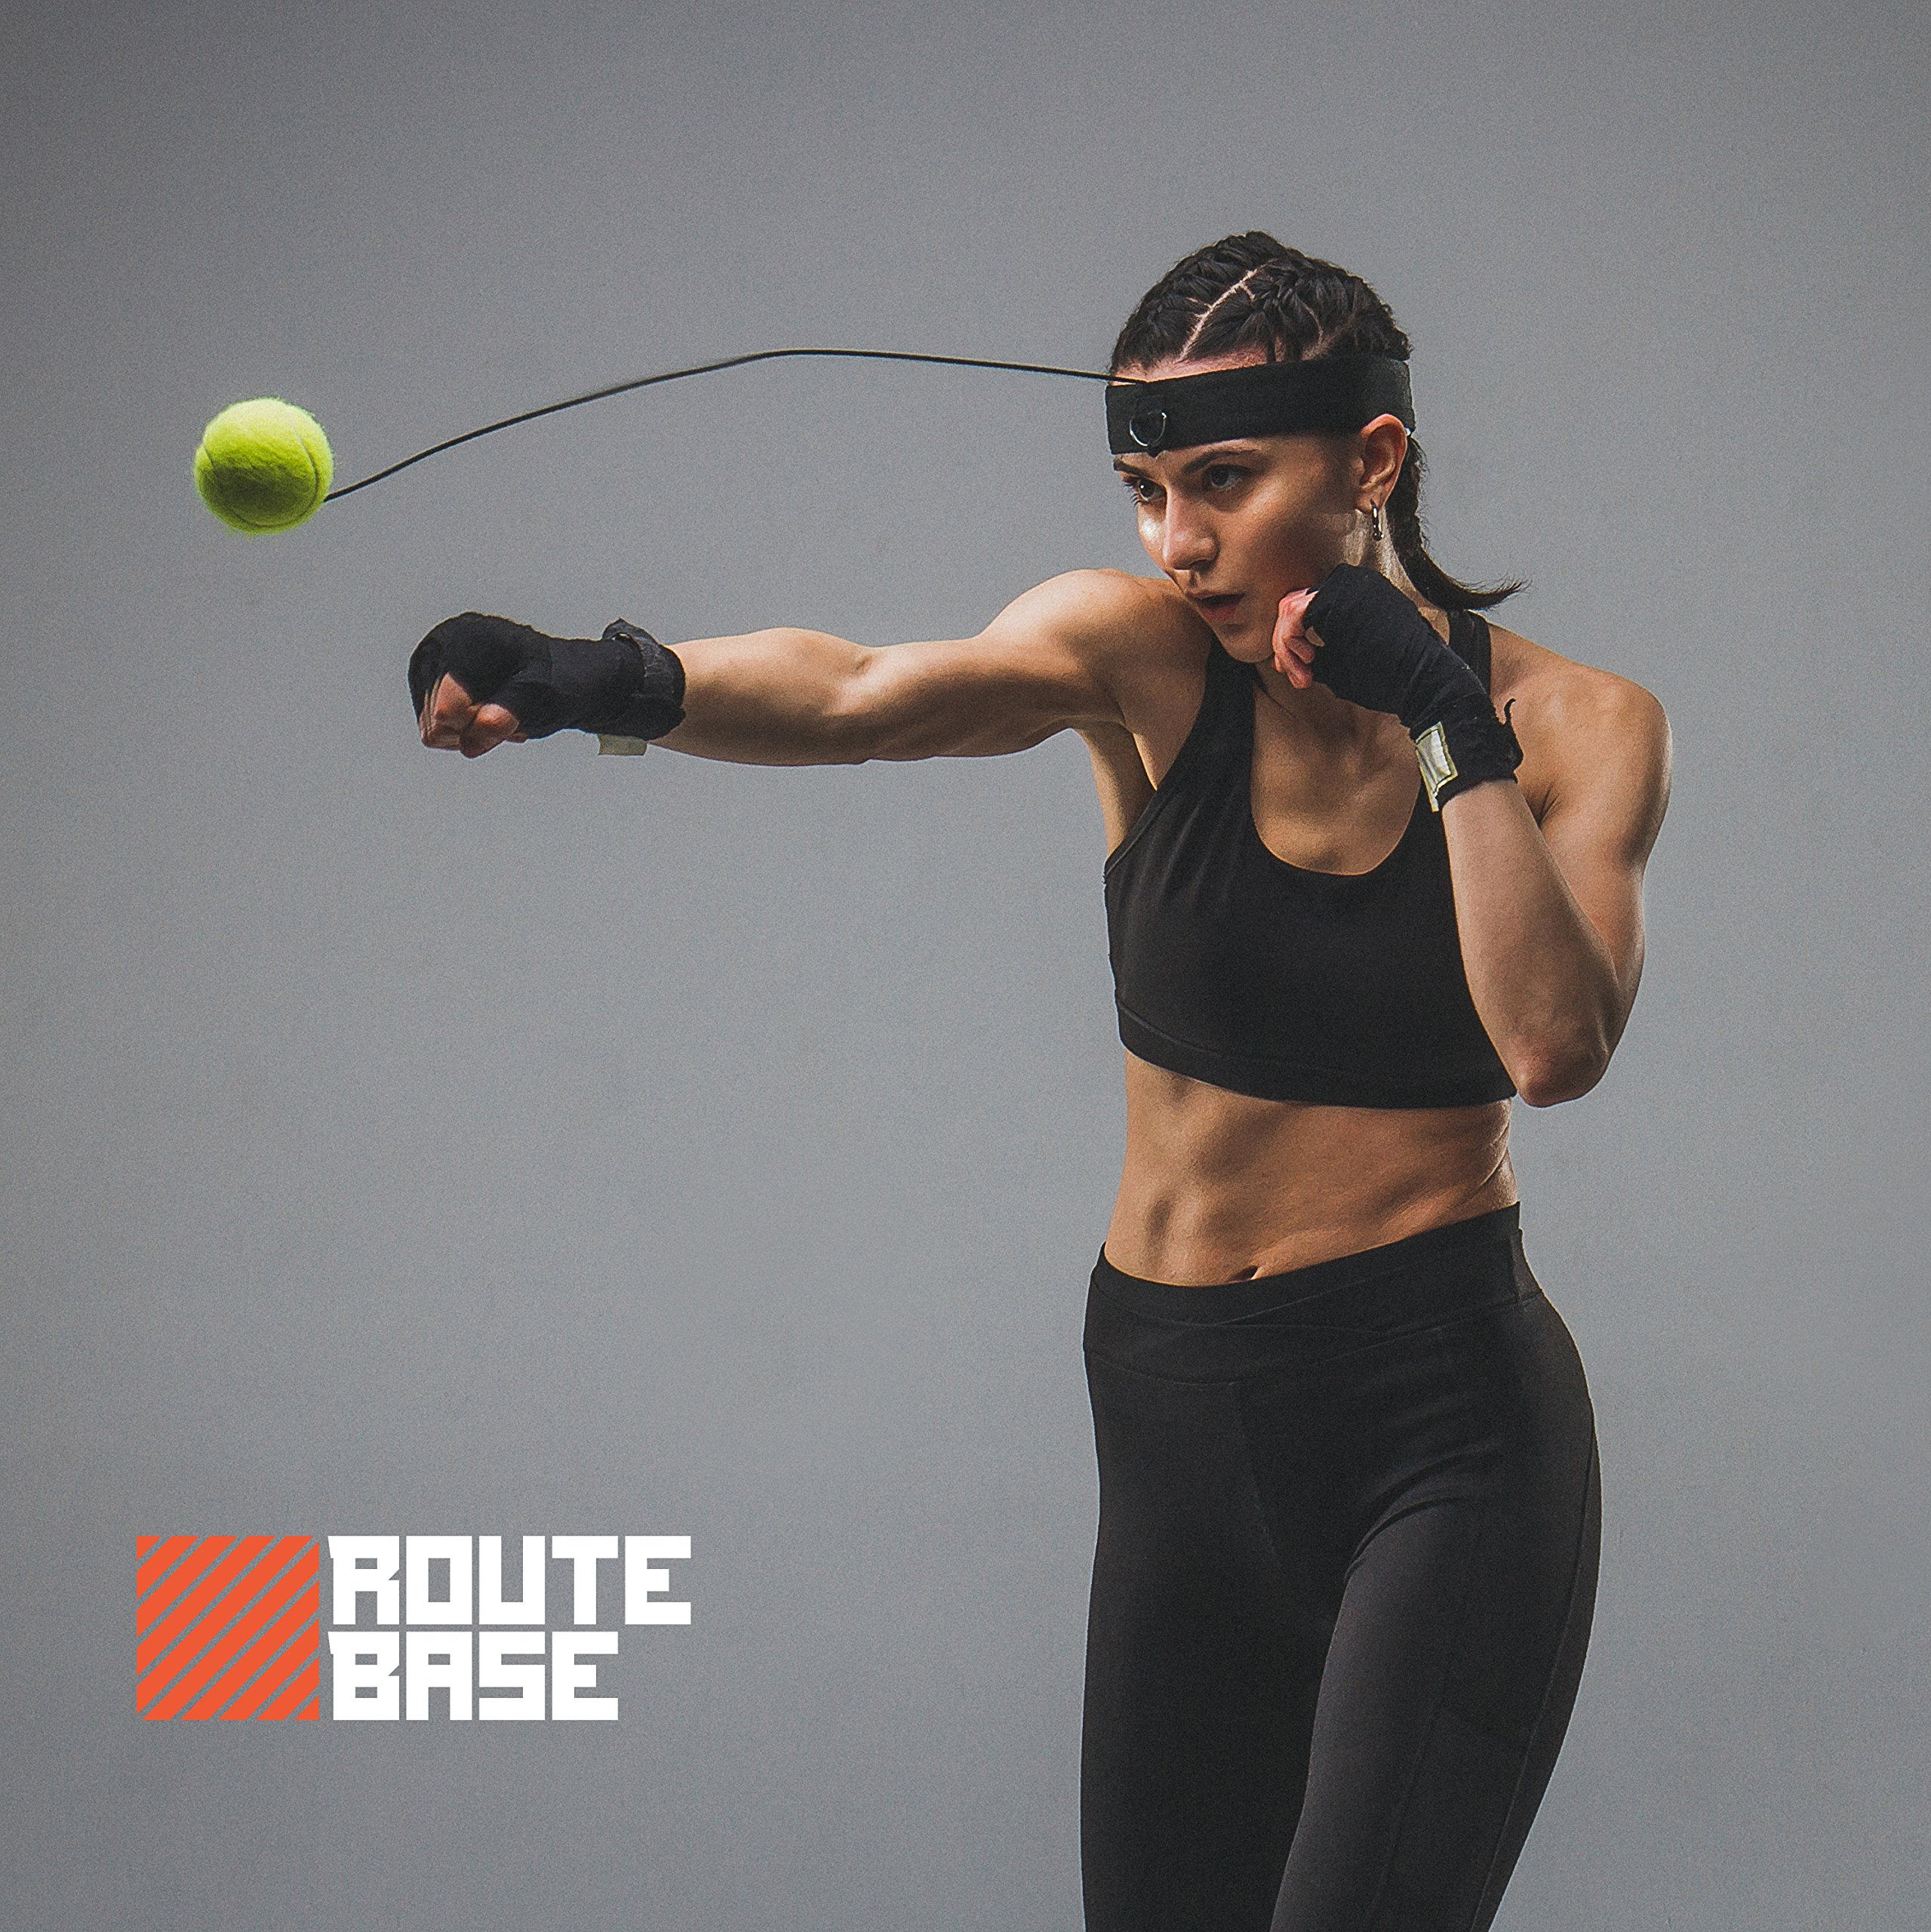 Boxing Fight Ball Reflex, Boxing Headband, tennis Ball with string to improve Reaction and Speed Punch, perfect for Hand Eye Coordination Training and Punching Speed Improvement, MMA and Gym Equipment